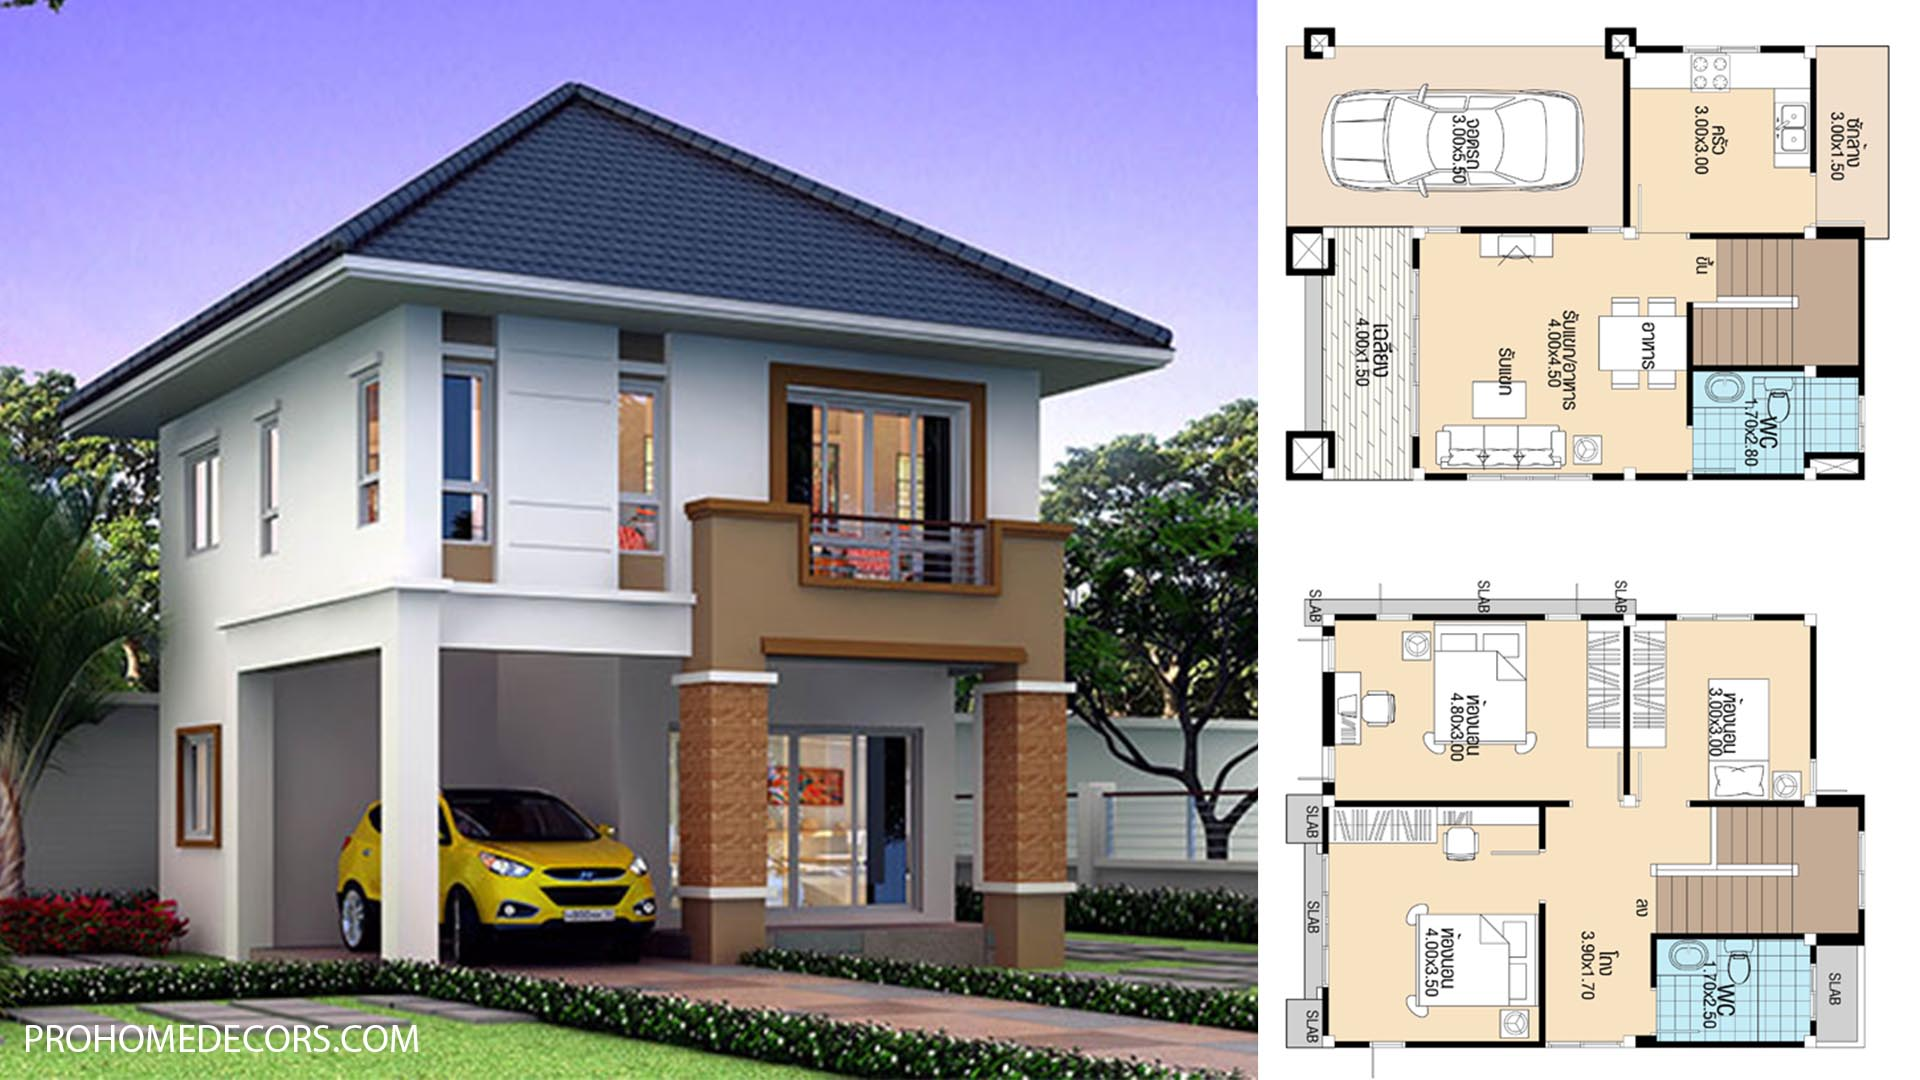 House Plans 7×8.9 with 3 Beds